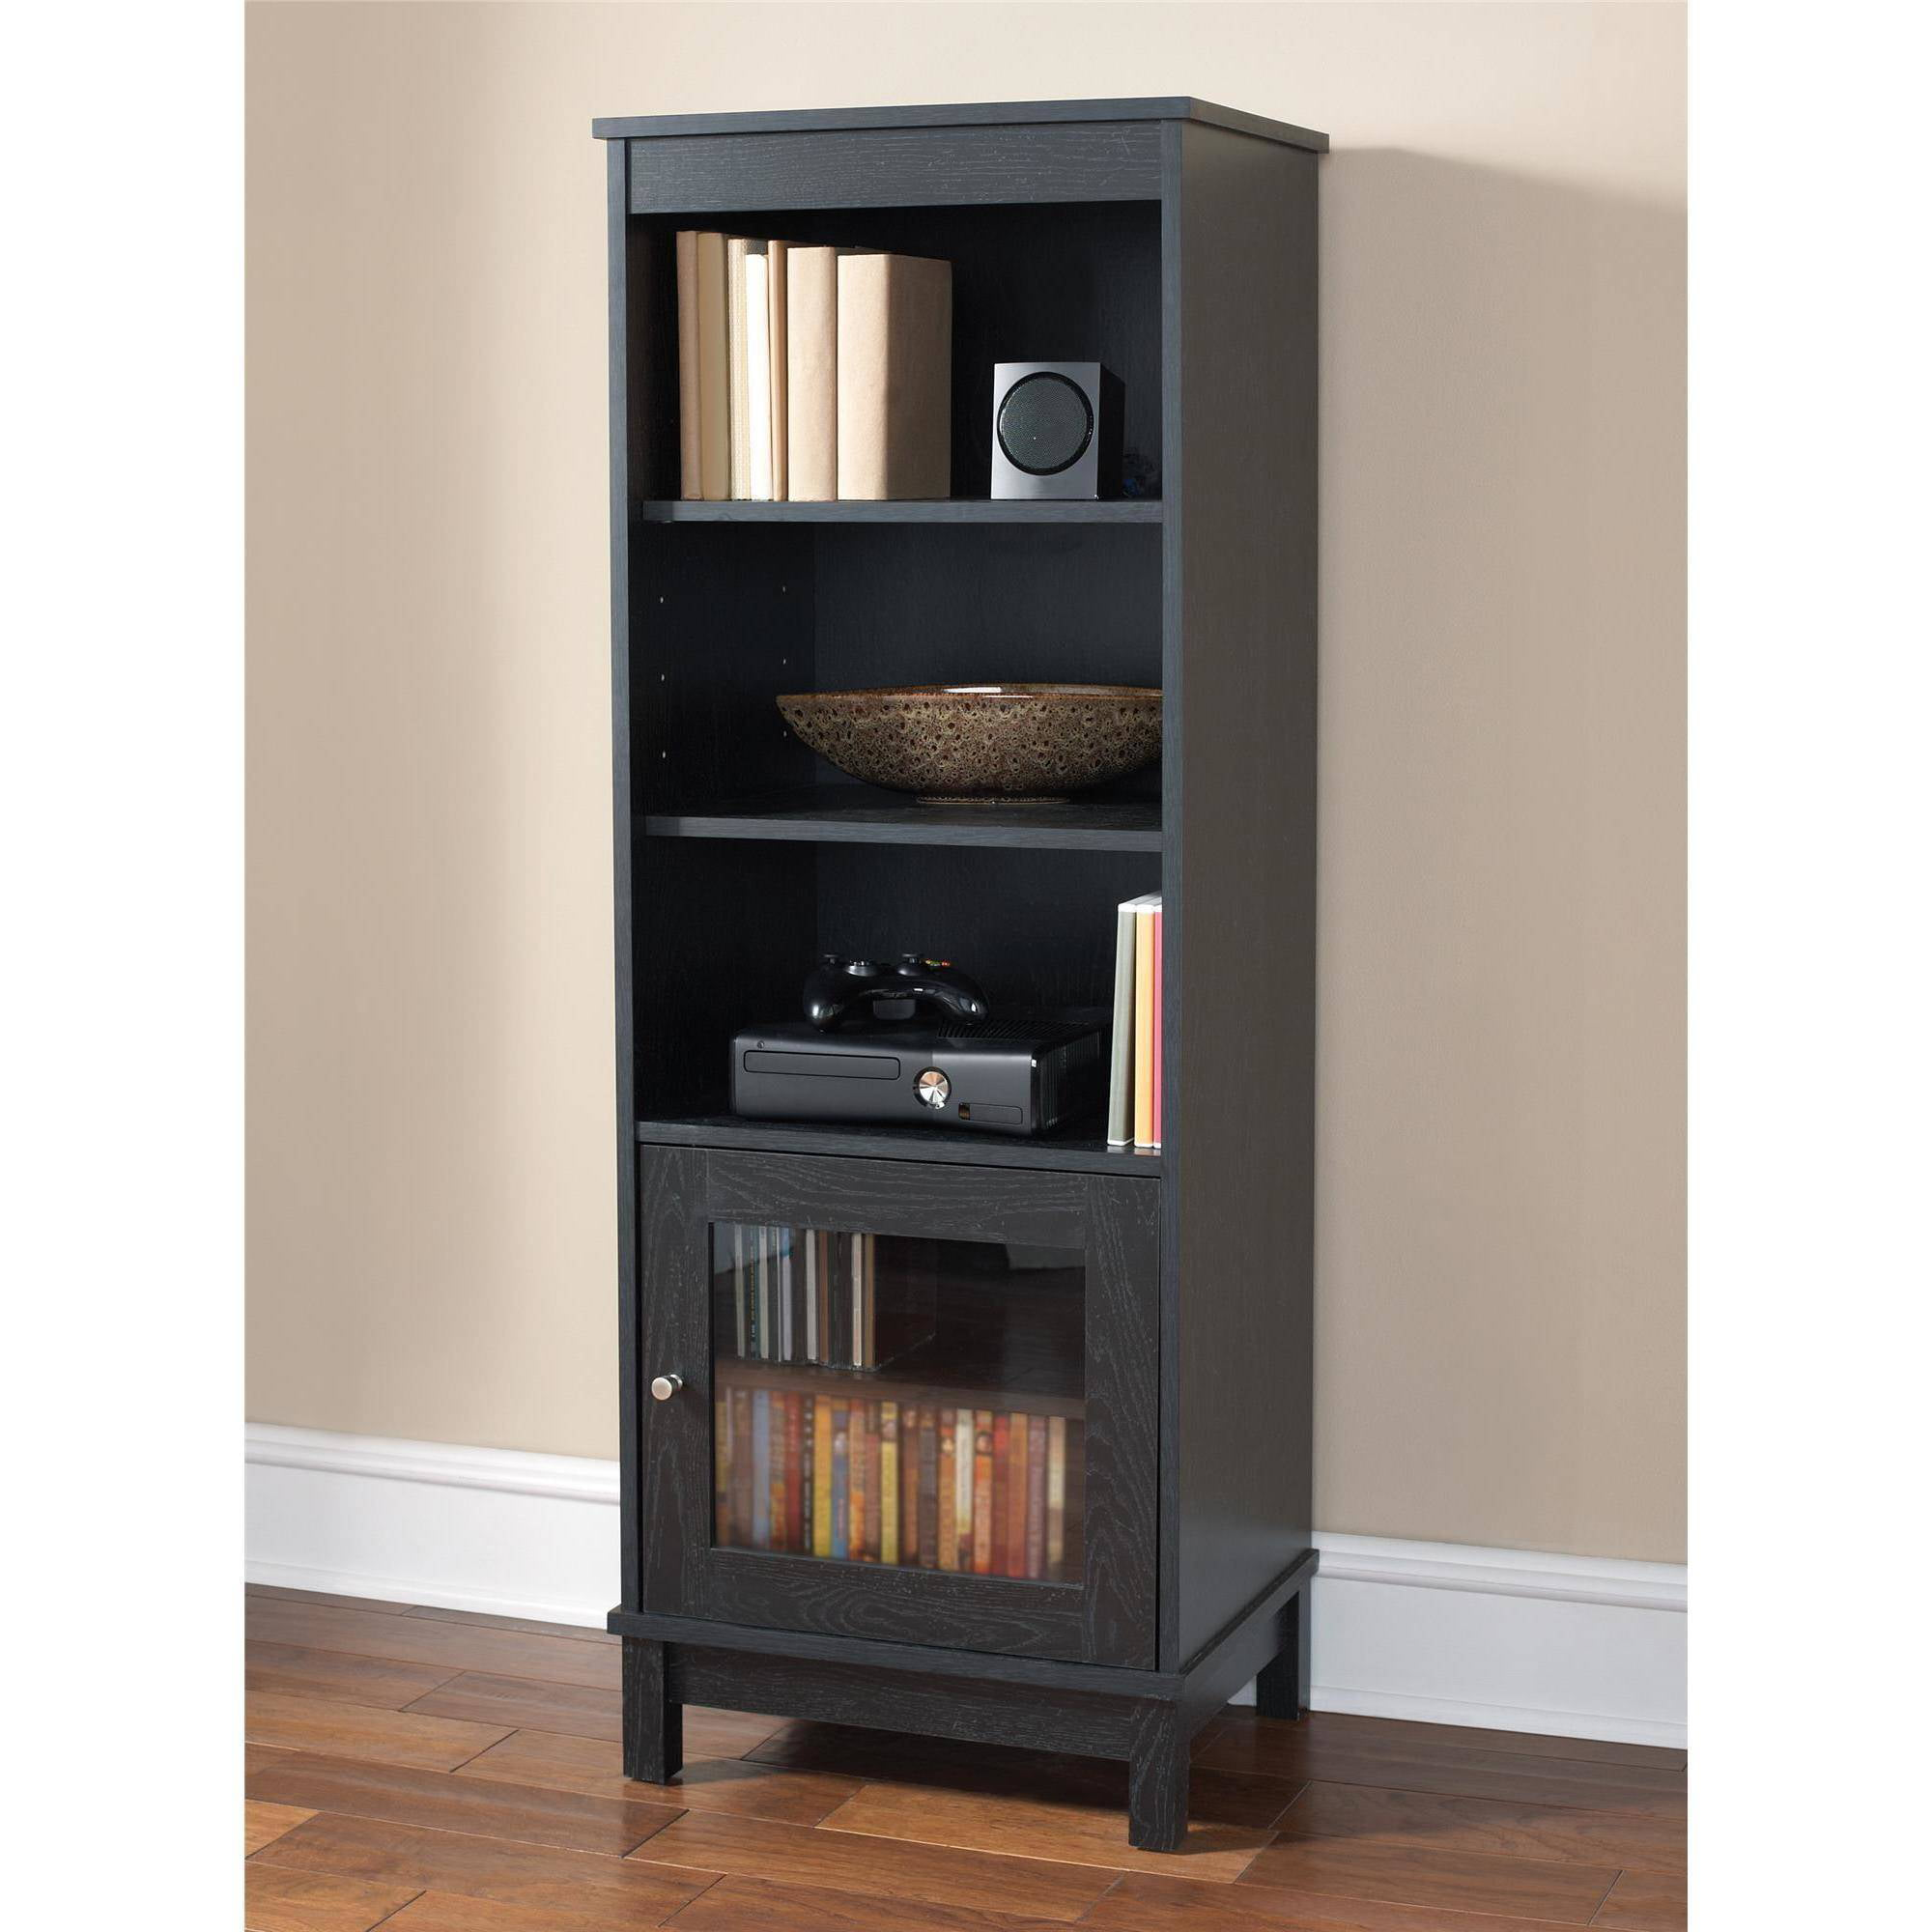 Mainstays Media Storage Bookcase Multiple Finishes Walmart Com